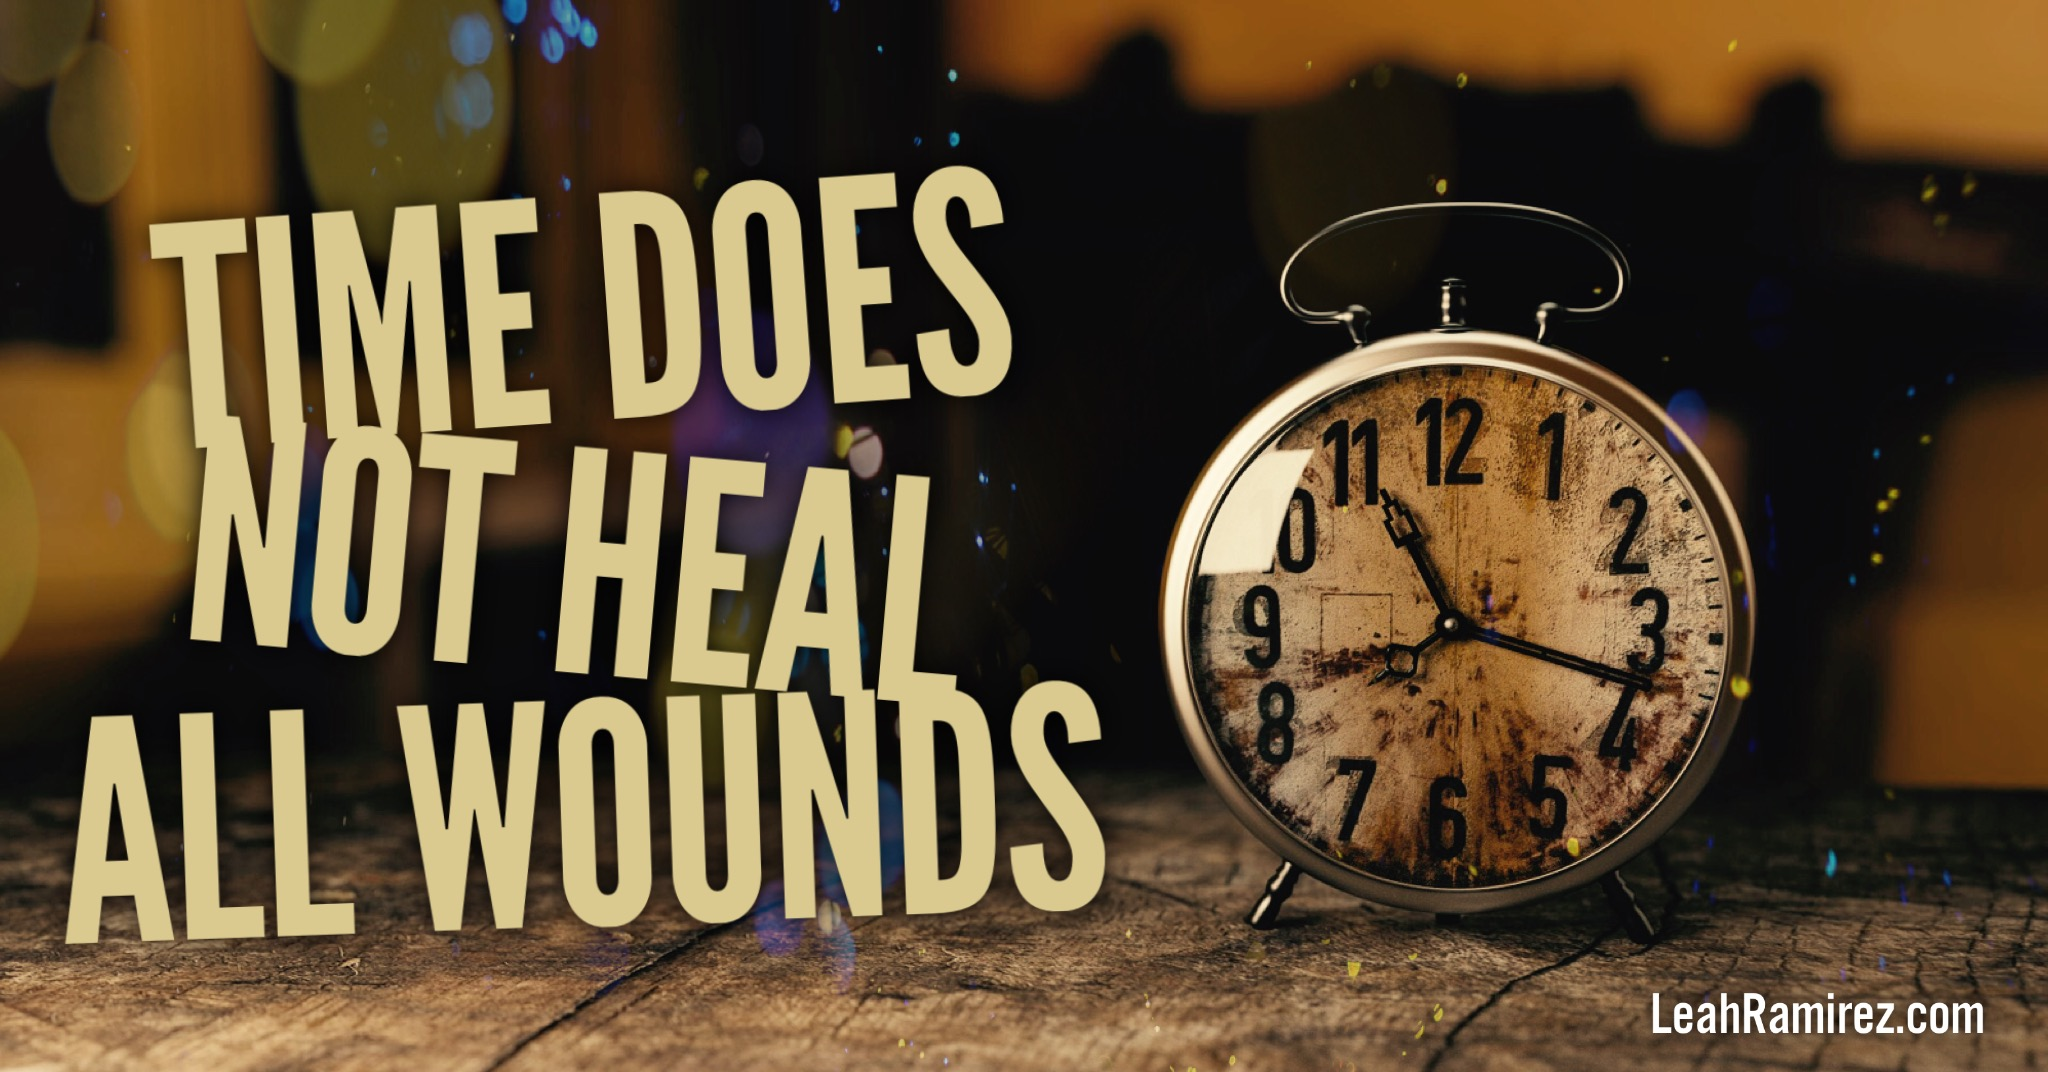 Time Does Not Heal All Wounds